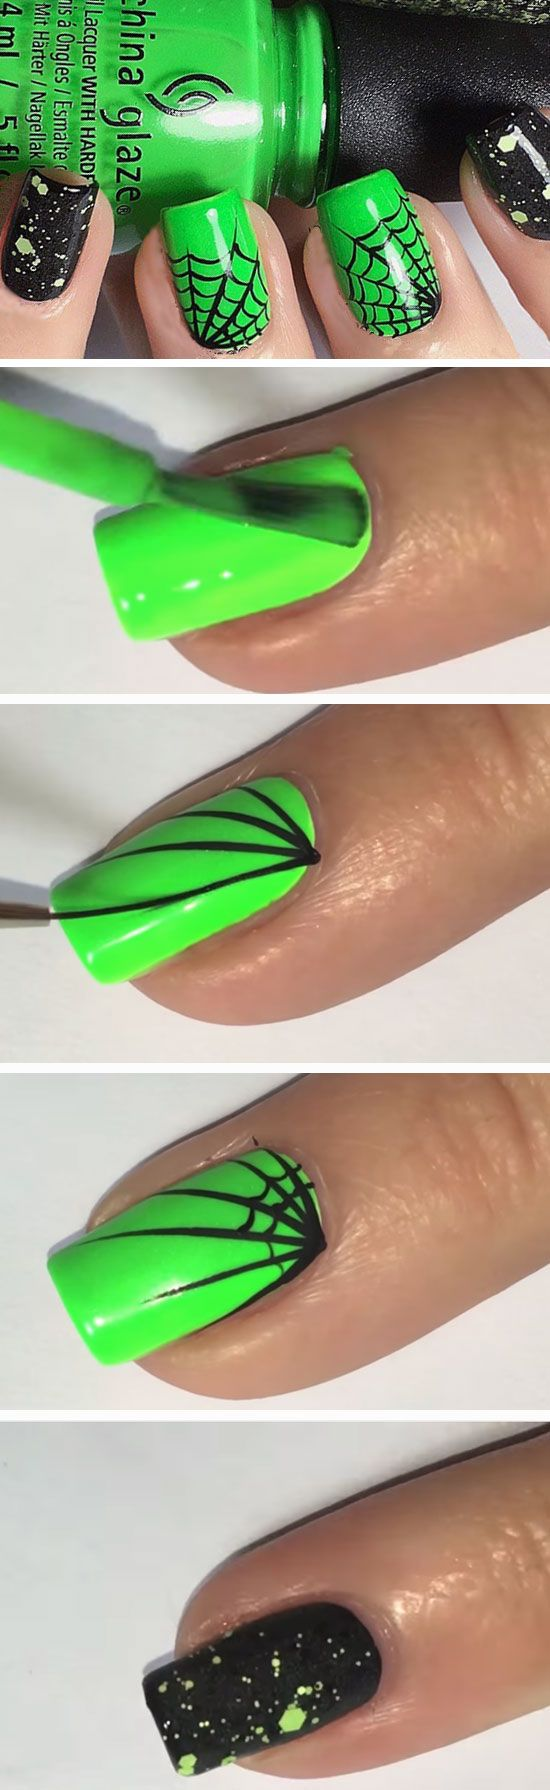 23 Easy Halloween Nail Art Ideas for Teens | Ideas de arte en uñas ...